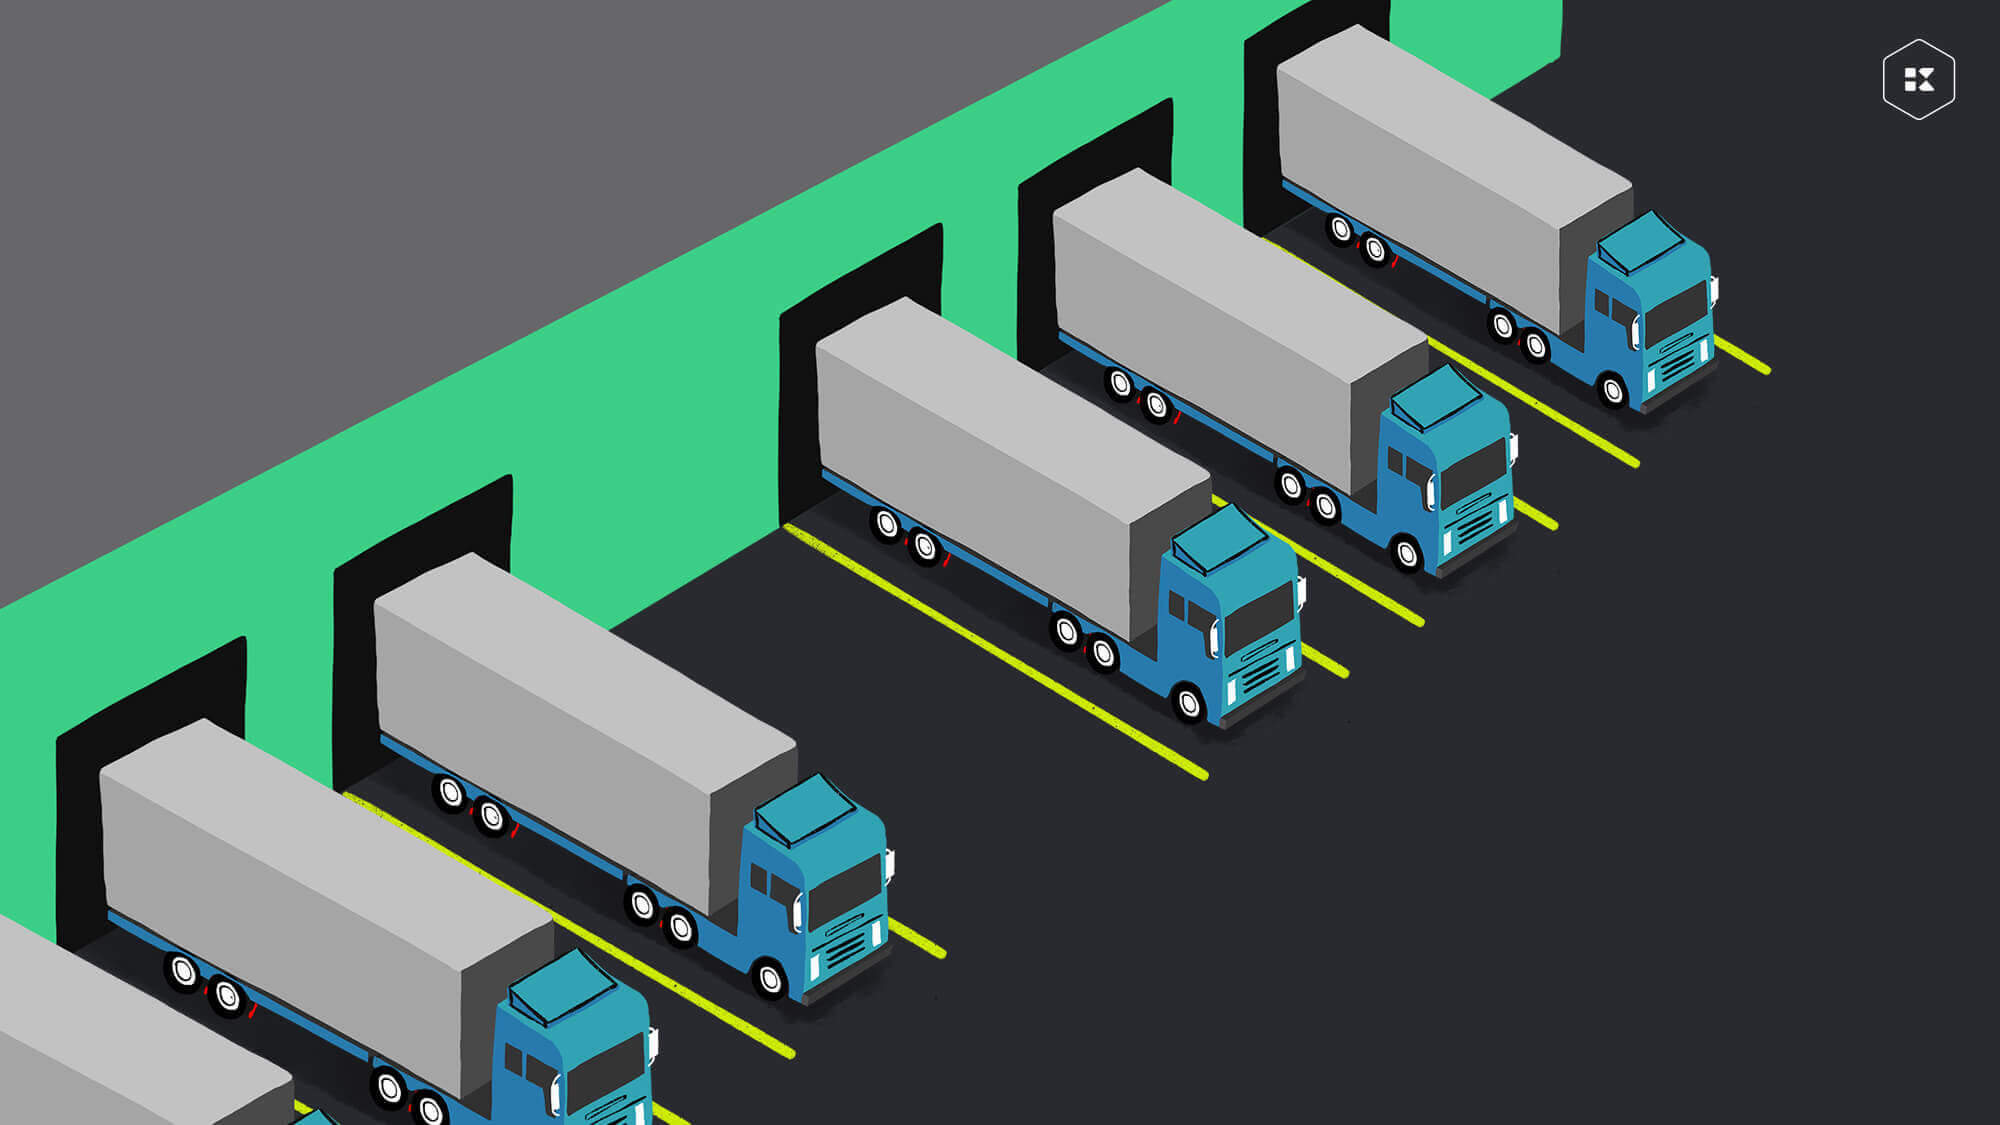 Semi trucks parked in loading docks of a warehouse play a key role in good supply chain management